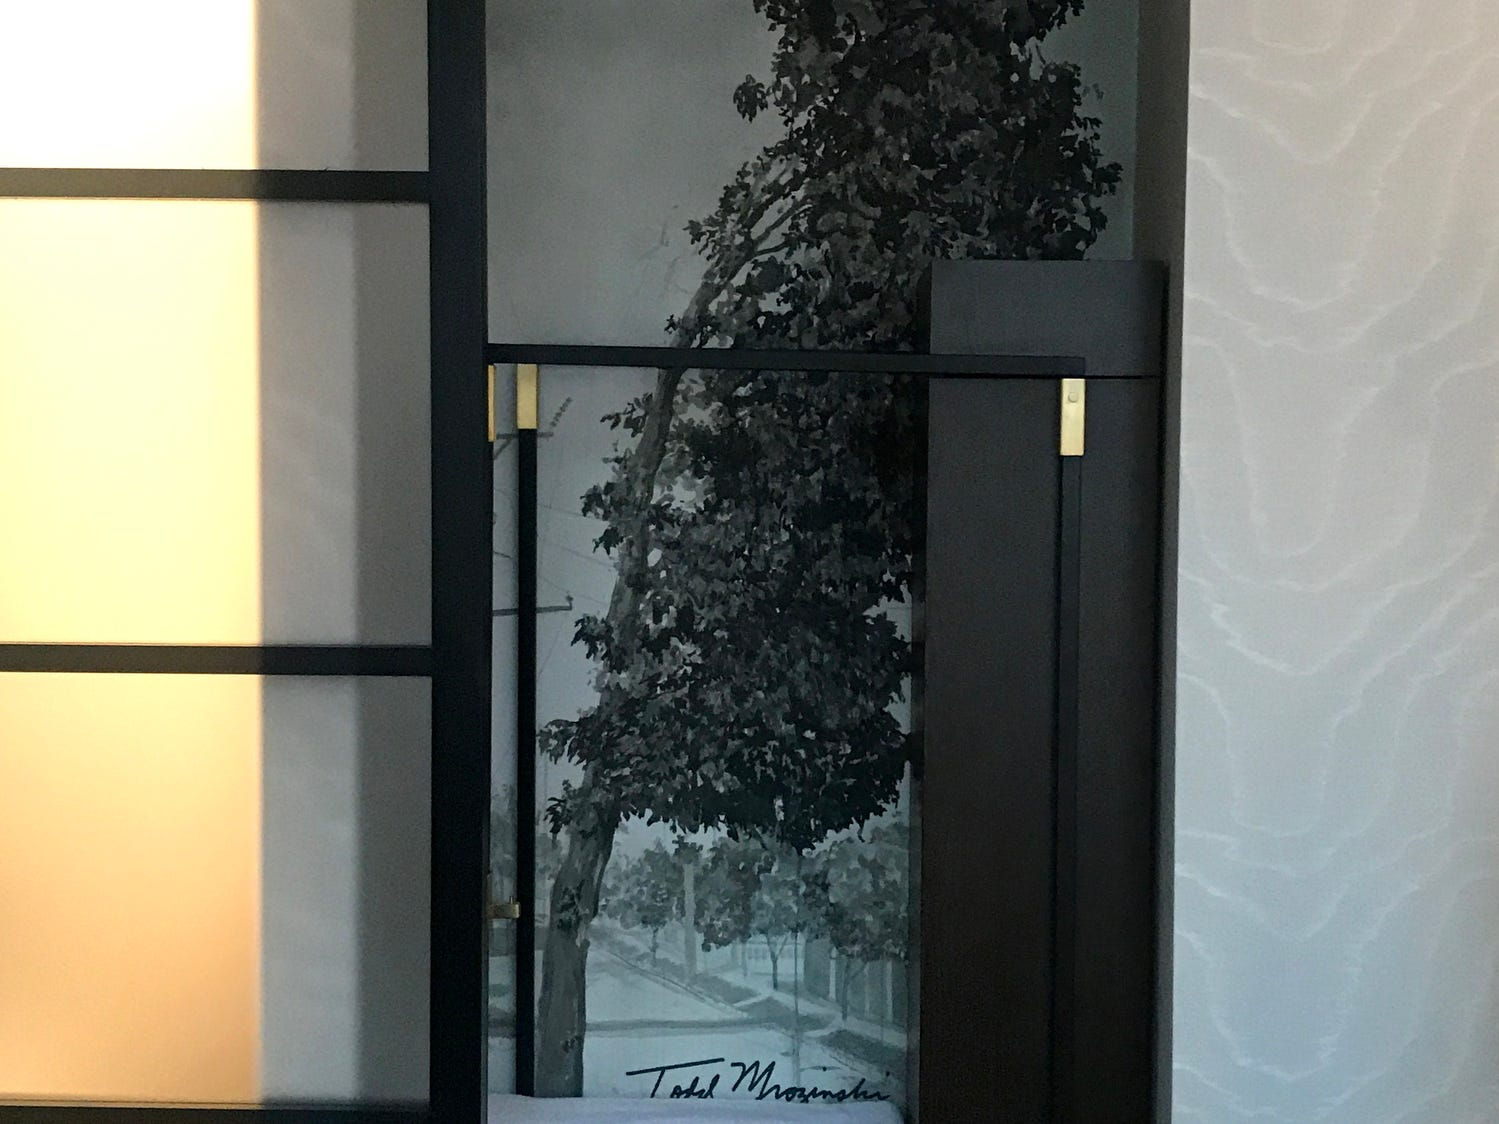 When you open the closets to hang up your clothes at the Saint Kate arts-focused hotel, you may find trees painted by Milwaukee artist Todd Mrozinski.